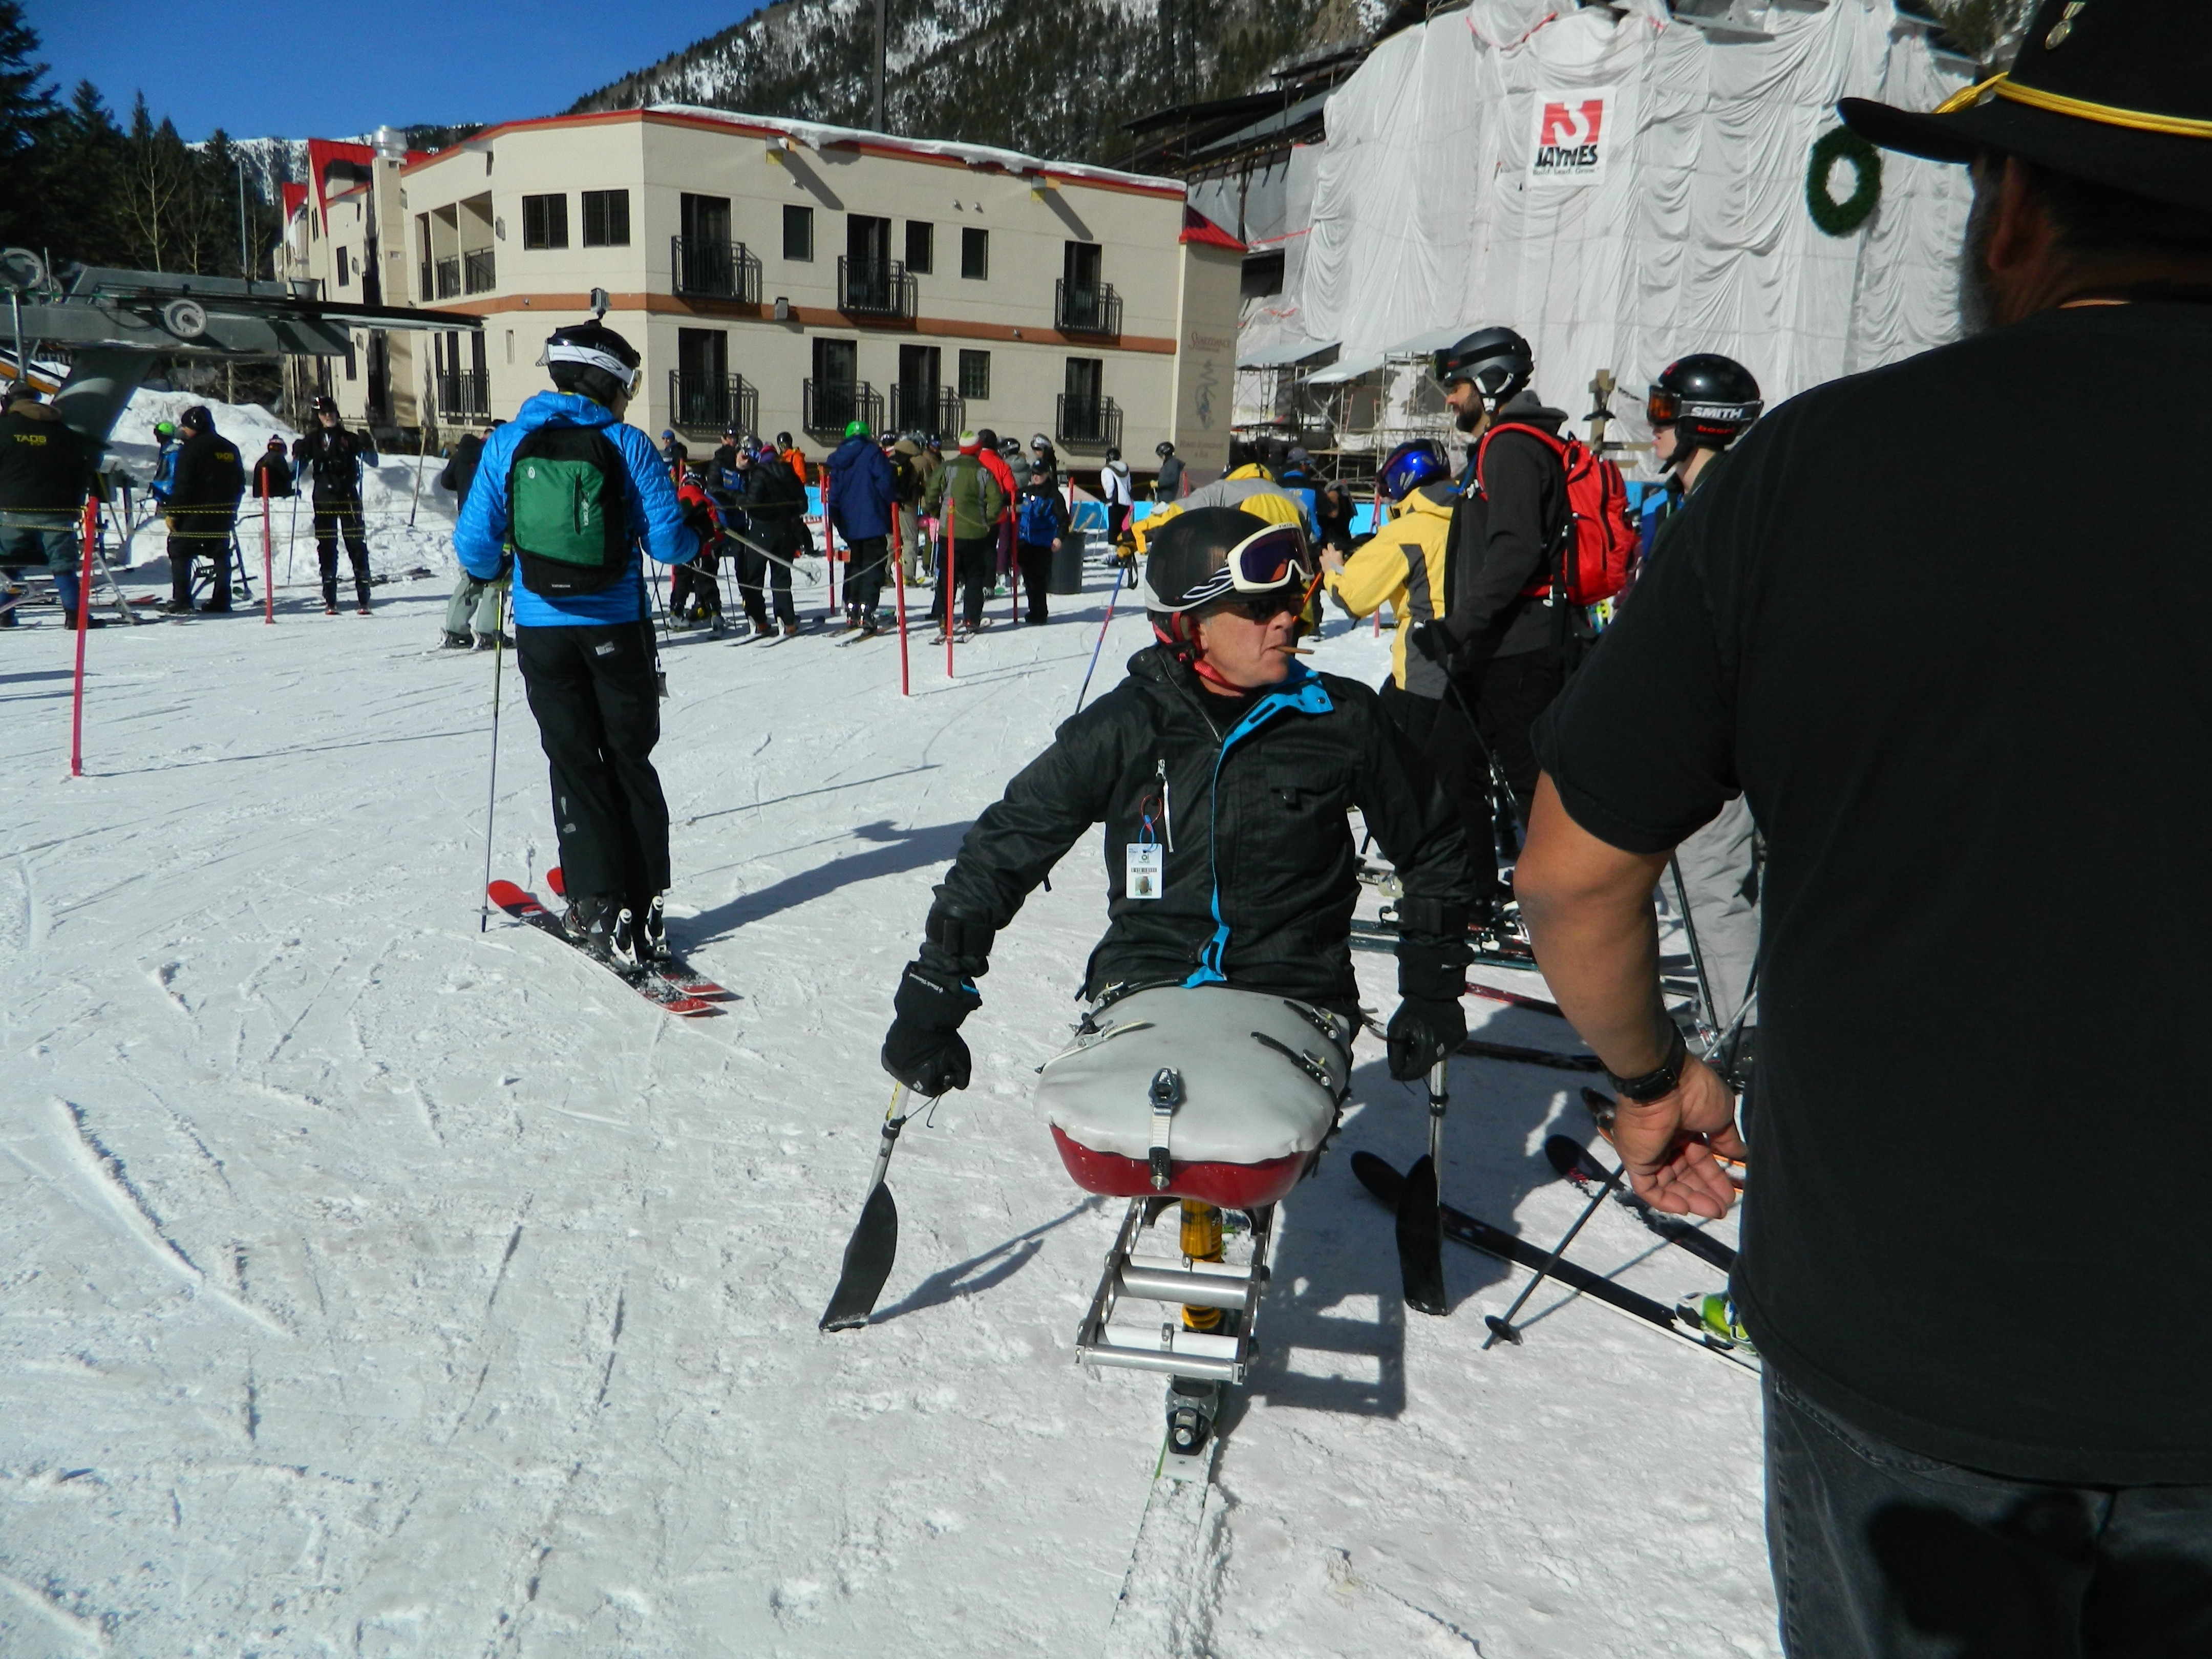 Disabled skier in ski chair at Taos Ski Valley amidst crowd of skiers milling around entrance to chairlift. Lodges behind.